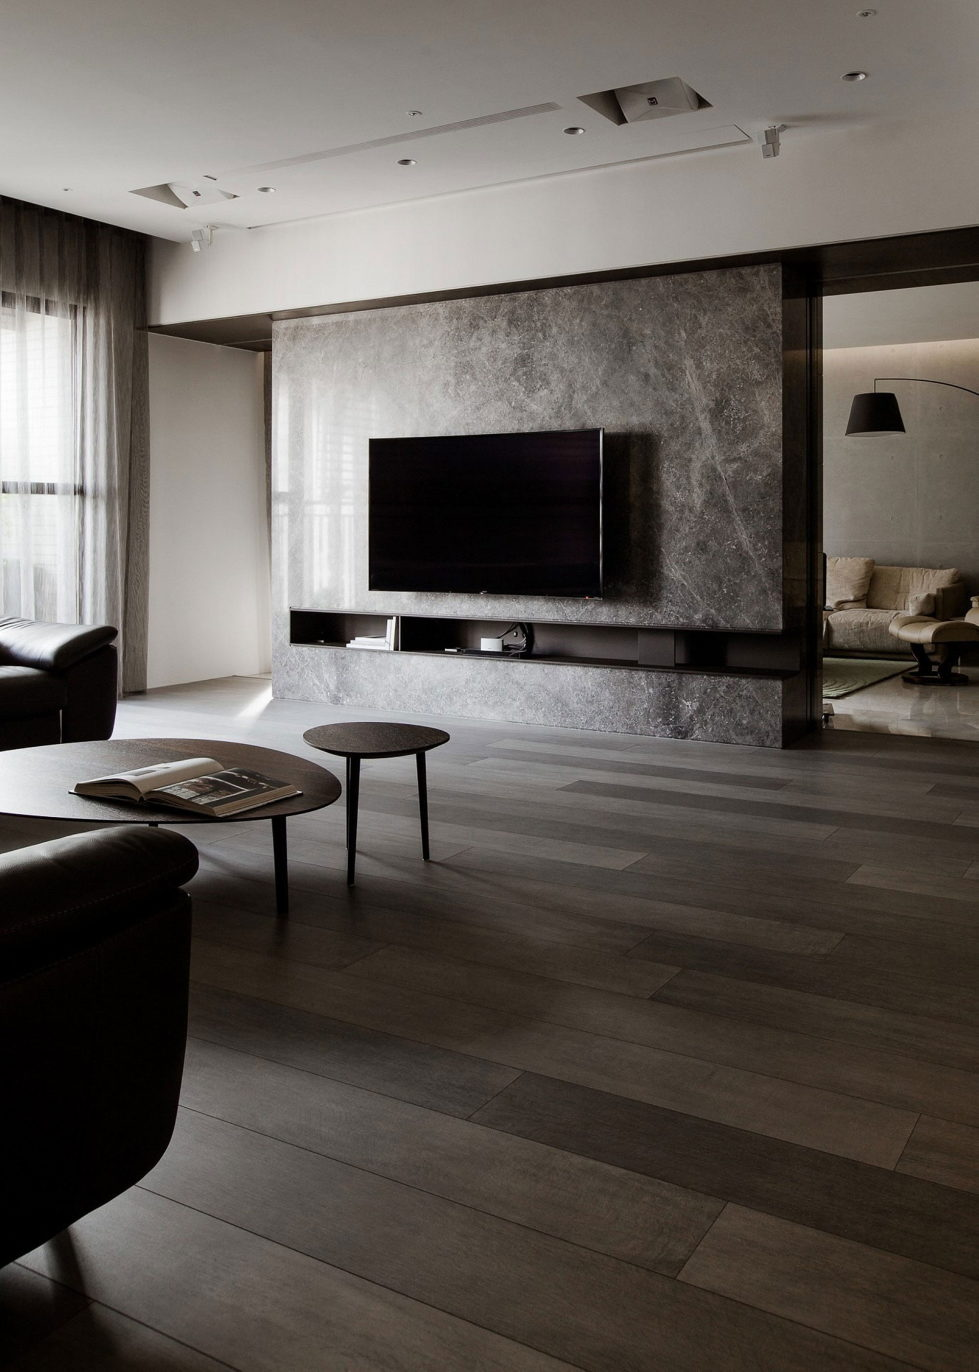 The Wang House Apartment In Taiwan Upon The Project Of The PM Design Studio 6